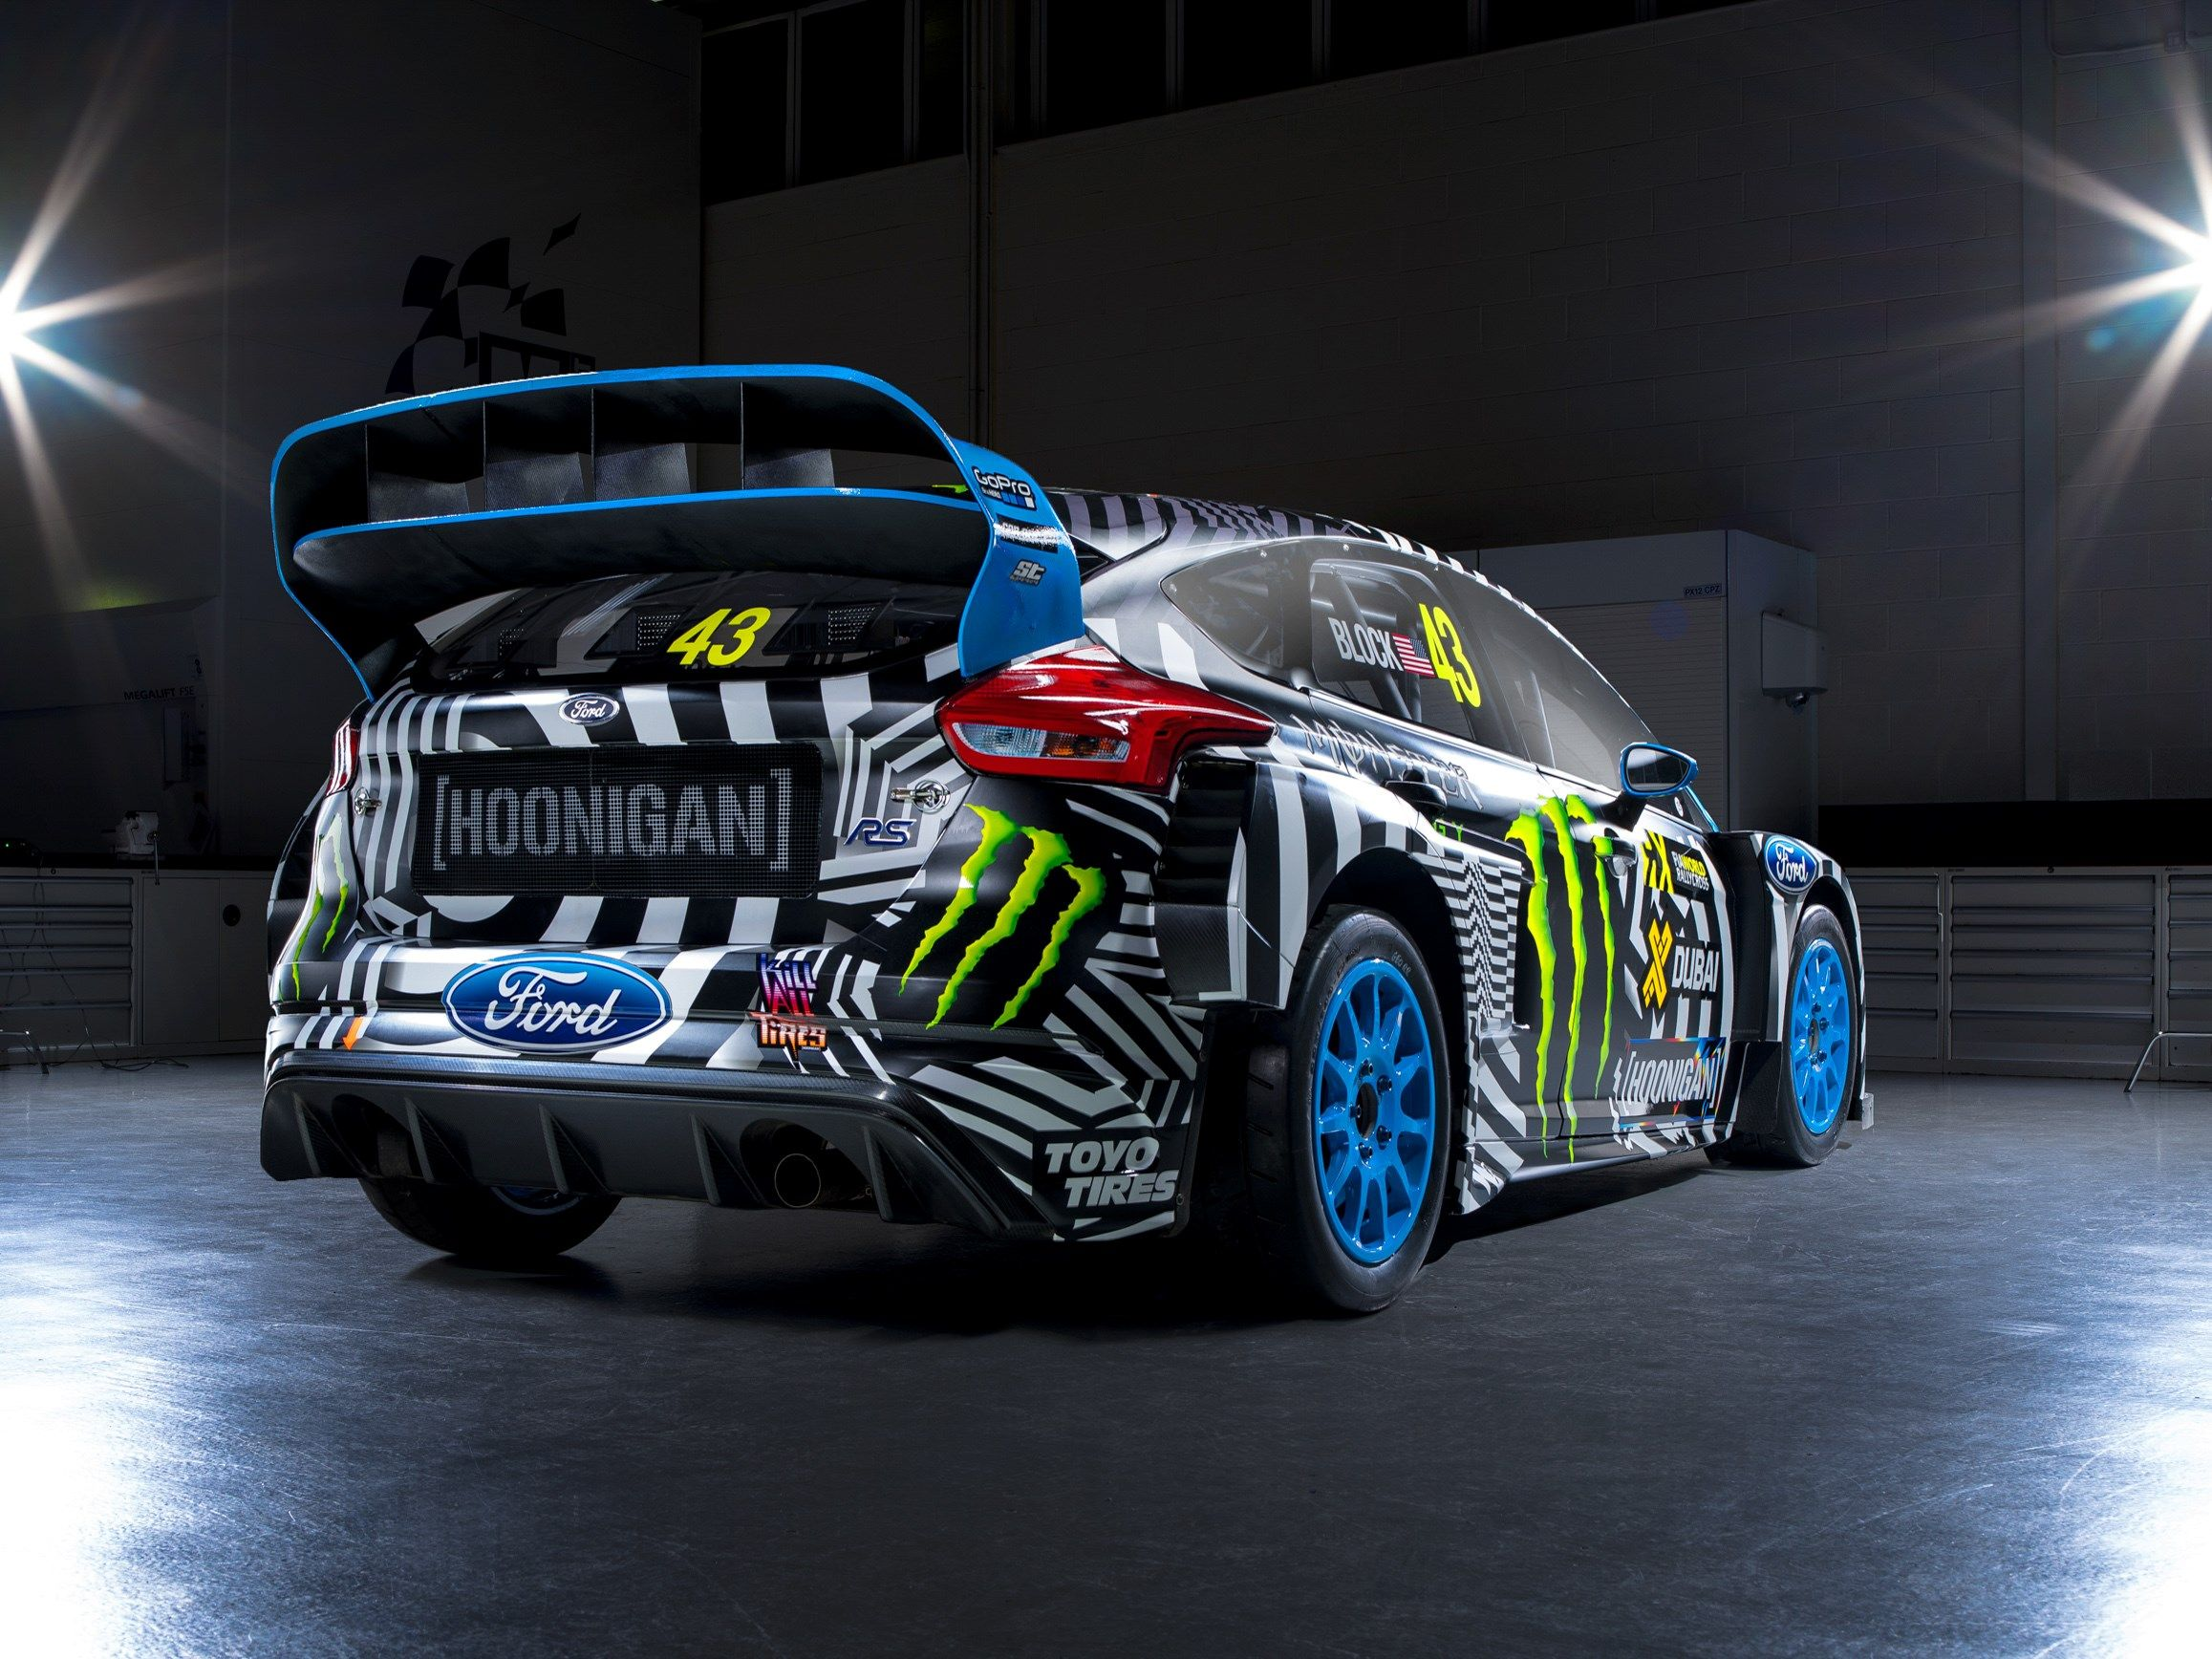 Ford focus rs pic background hd briley robertson 2315x1736